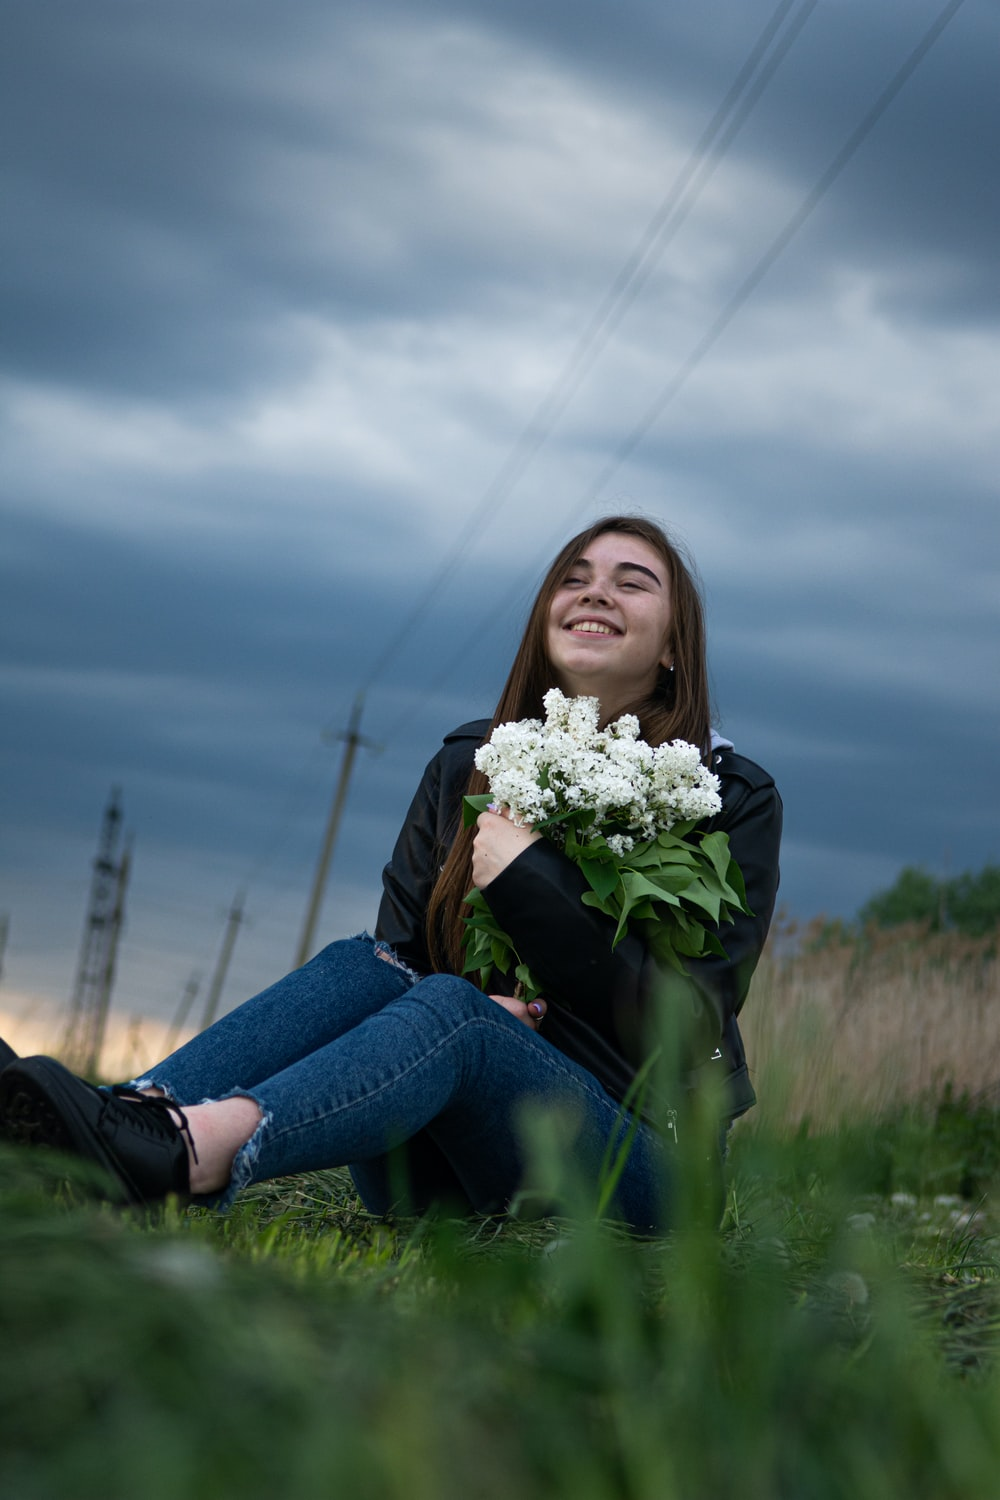 woman in blue denim jeans holding white flowers